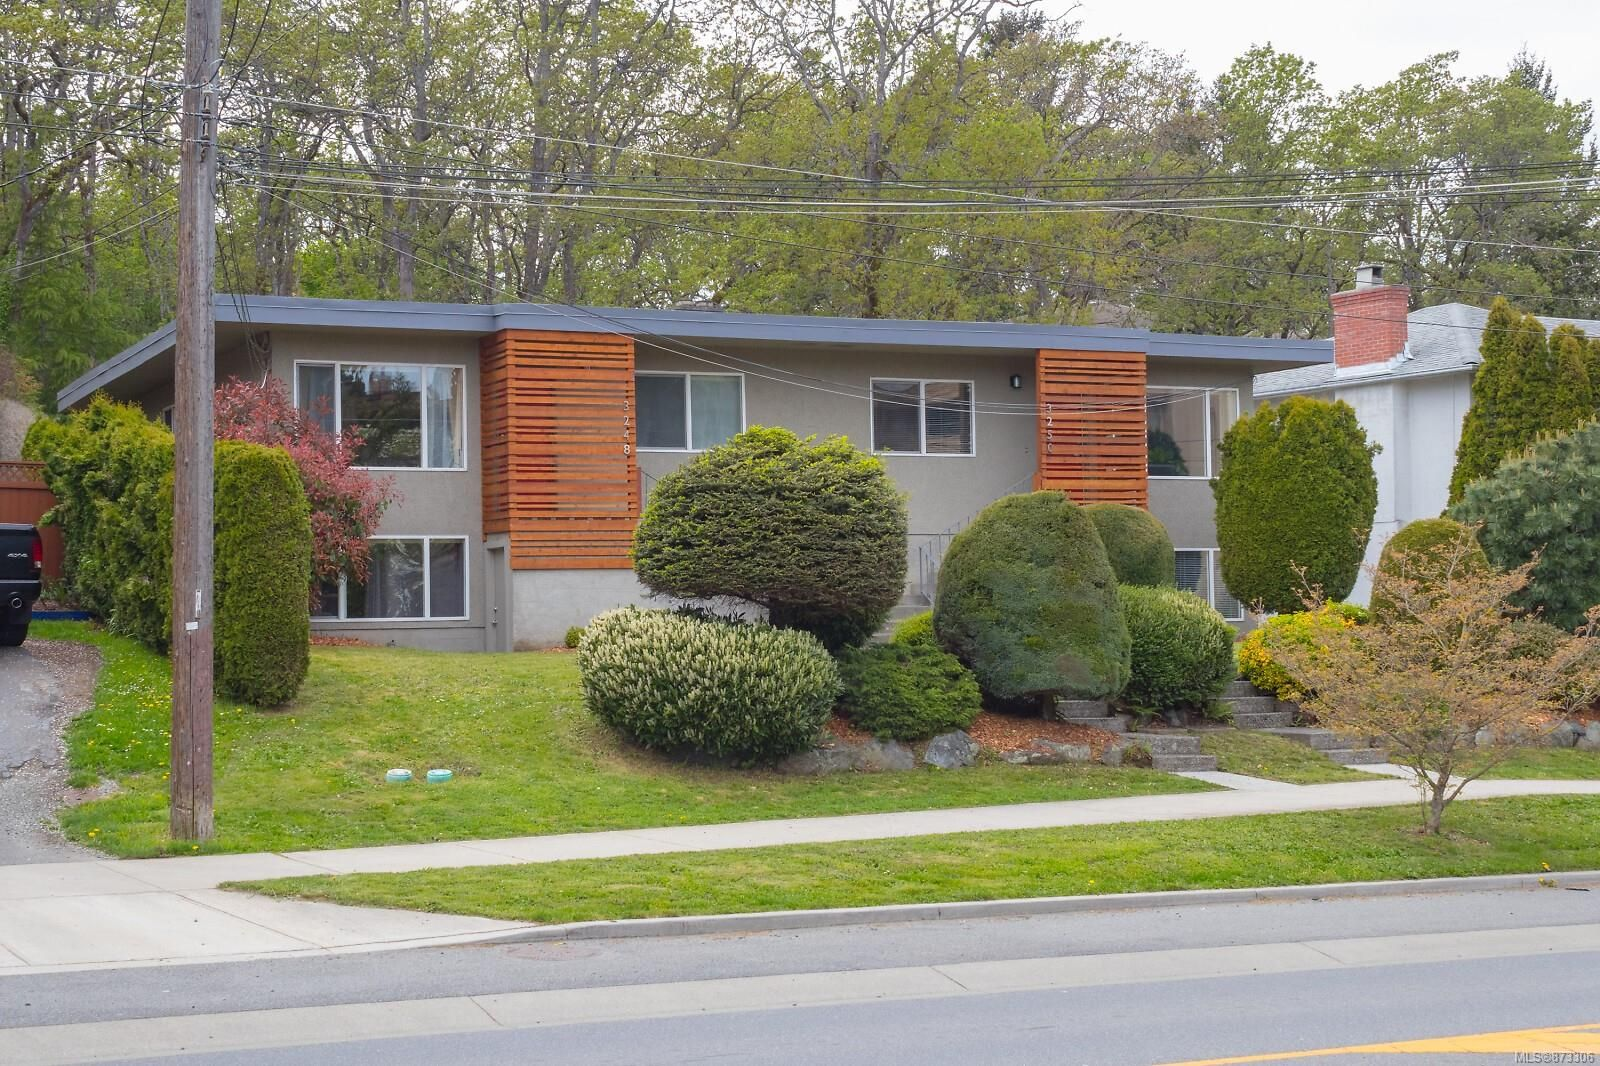 Main Photo: 3248/3250 Cook St in : SE Maplewood Full Duplex for sale (Saanich East)  : MLS®# 873306